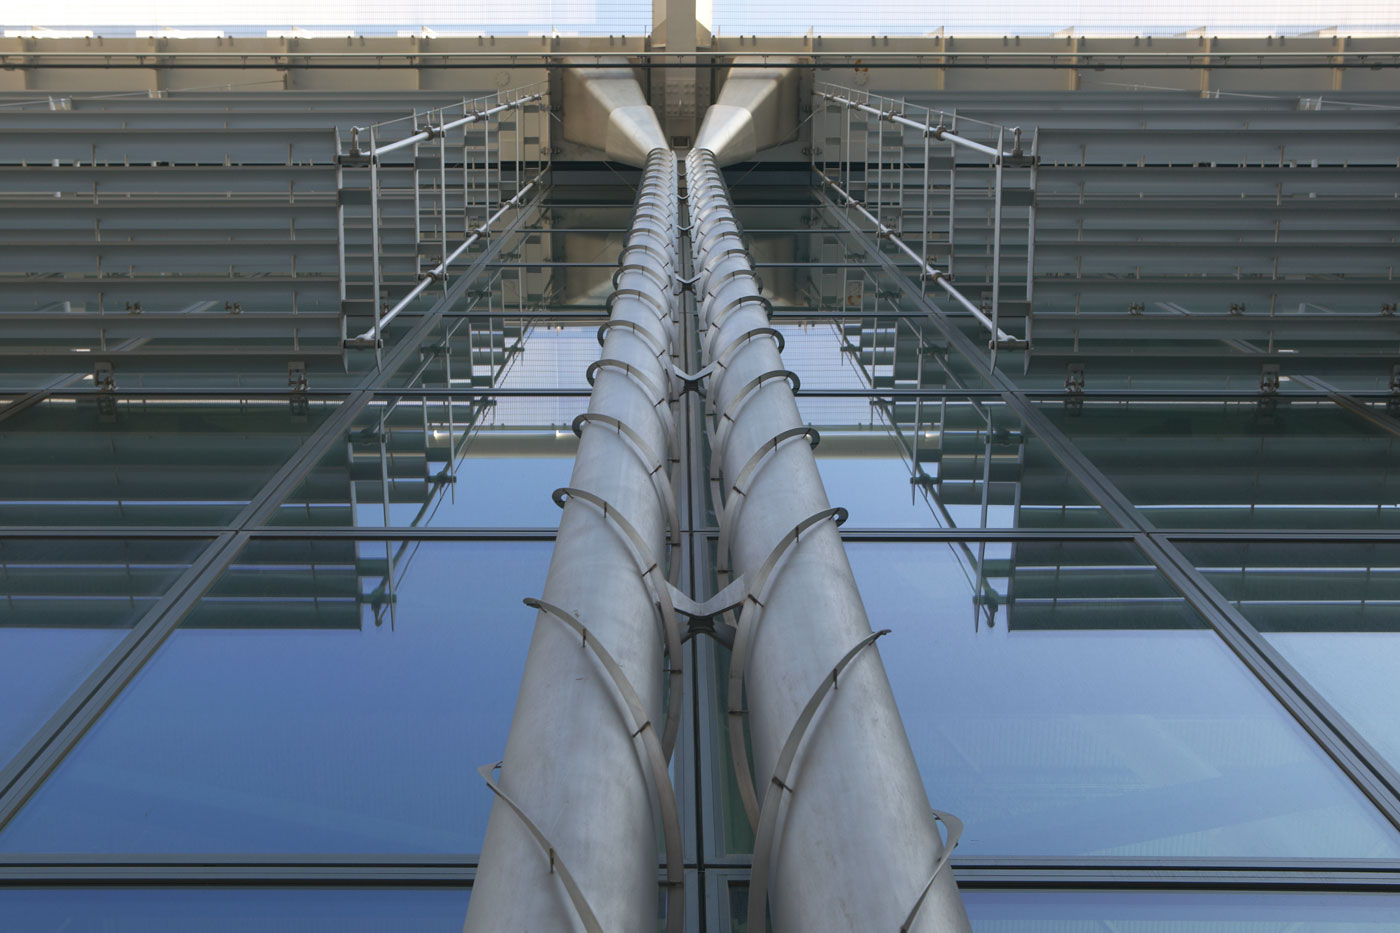 Heathrow Airport Terminal 5 glazed decorative drain system | Commercial Building Photographer